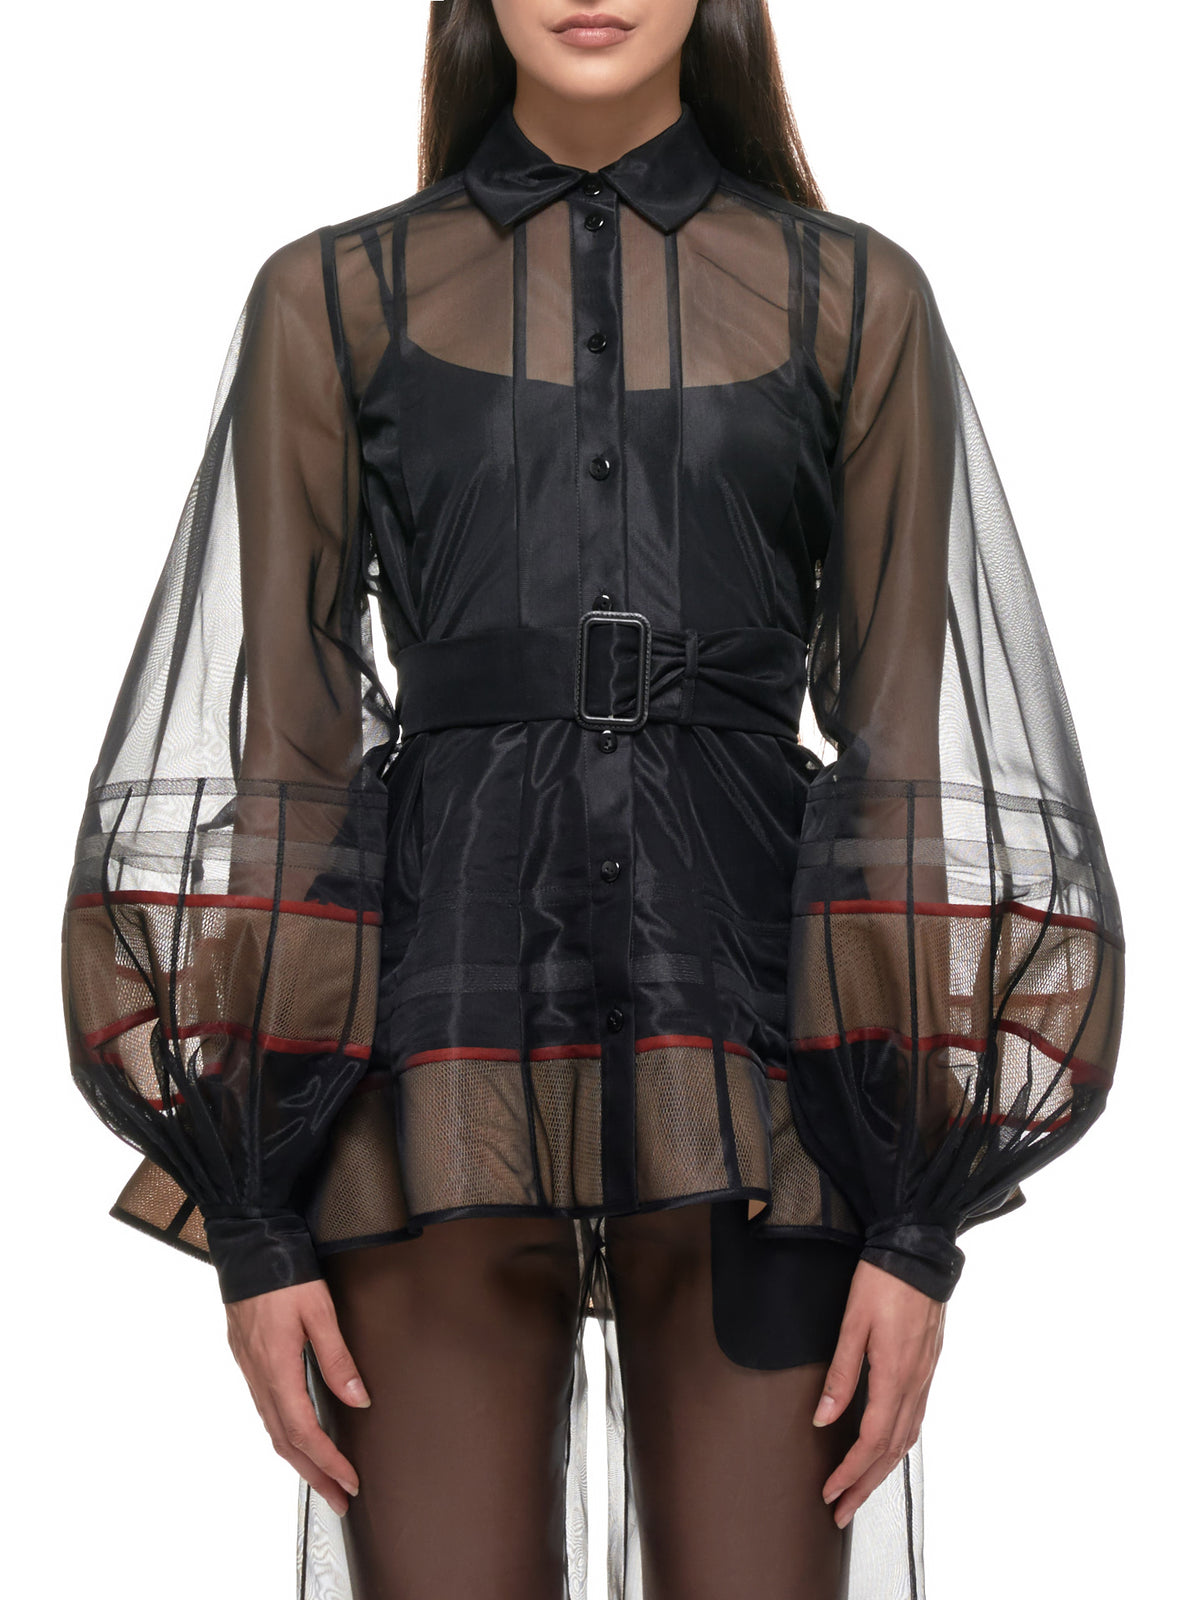 Lena Lumelsky Blouse | H.Lorenzo Front